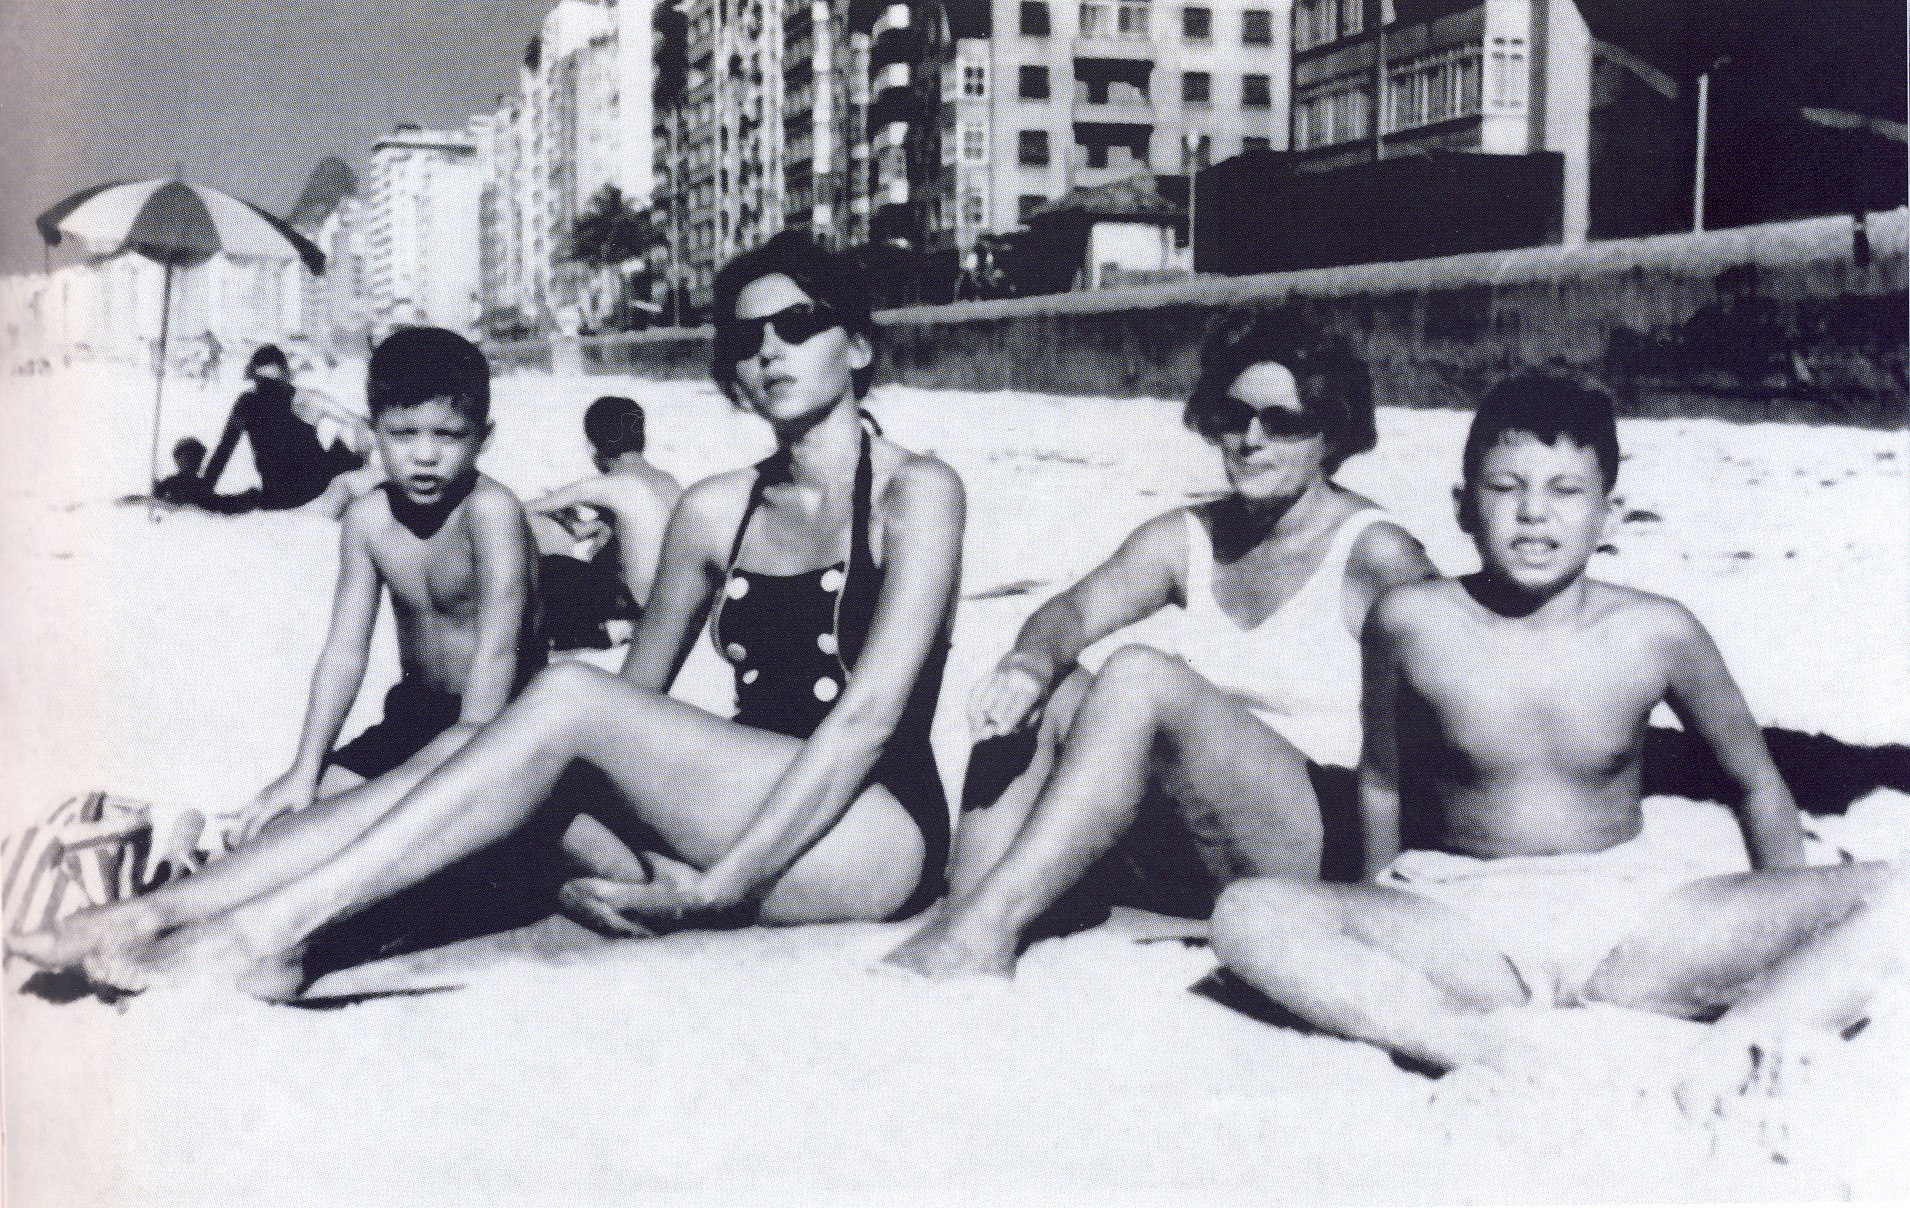 Clarice Lispector with her sons on the beach in Copacabana